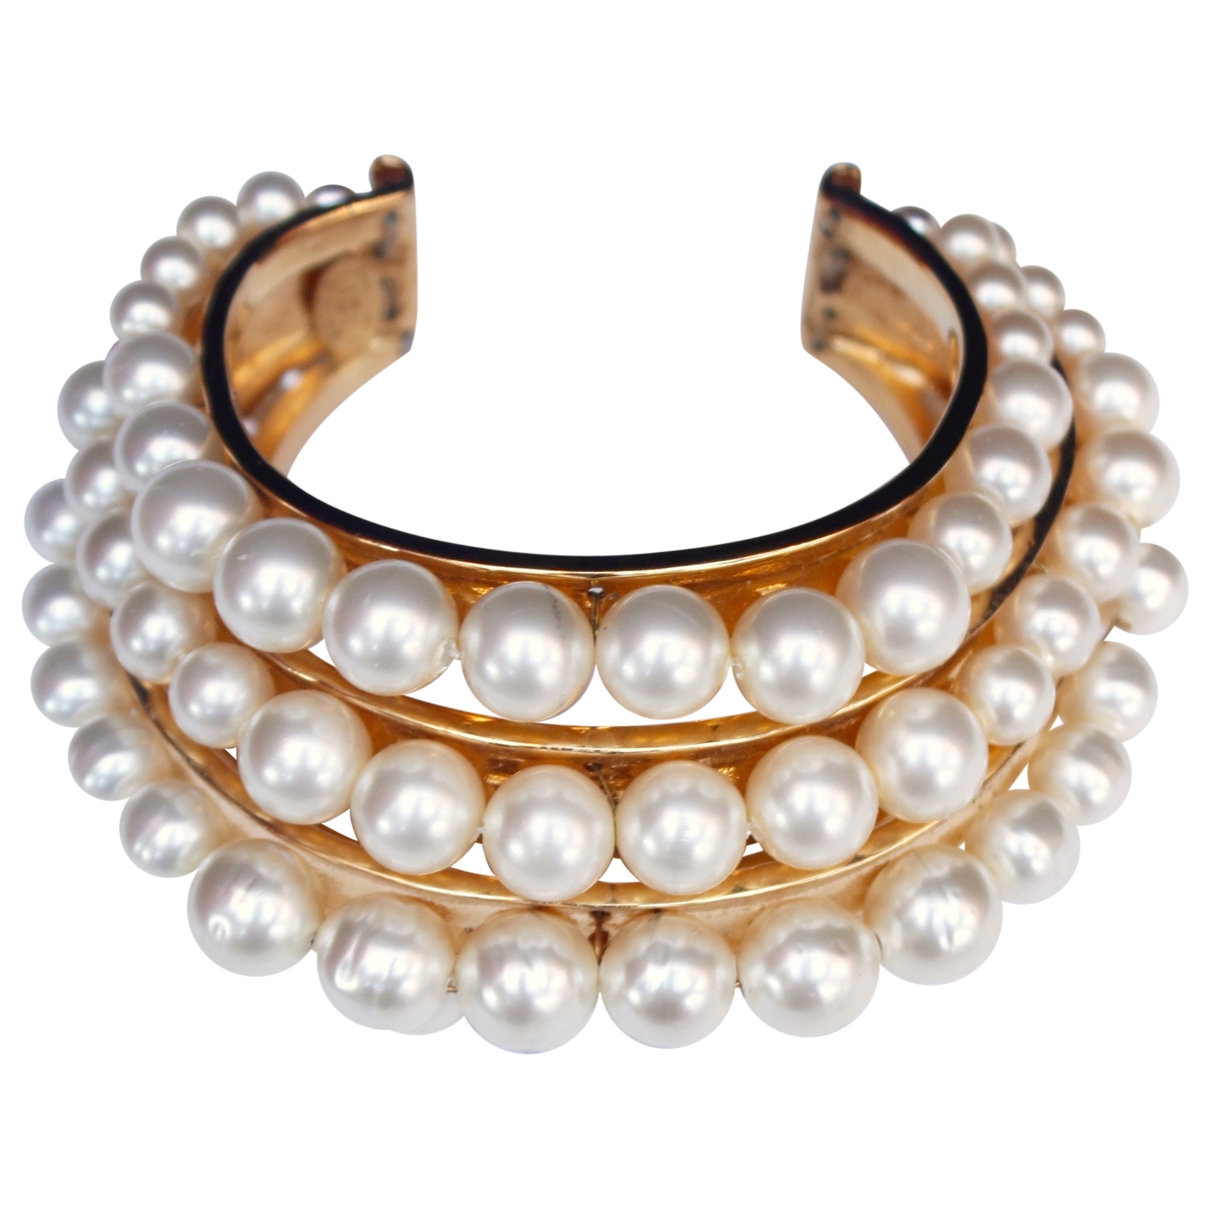 Chanel Baroque Armband in Metall